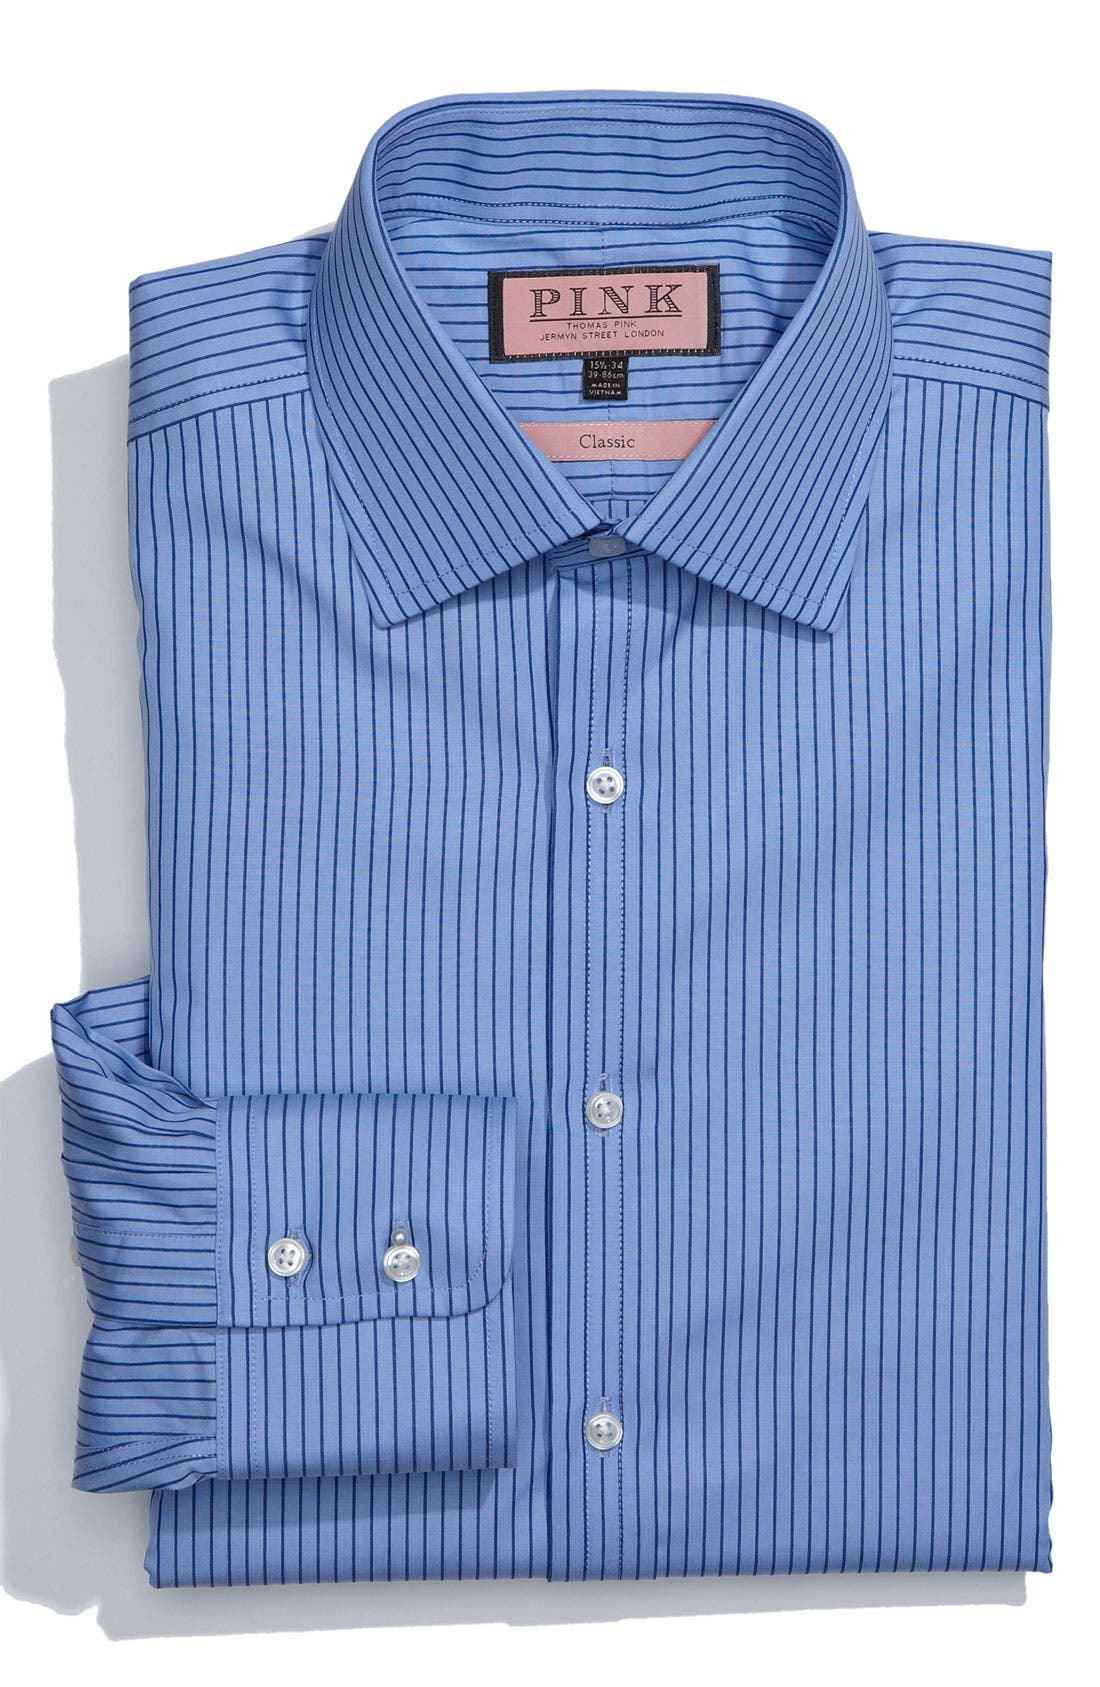 Main Image - Thomas Pink Classic Fit Dress Shirt